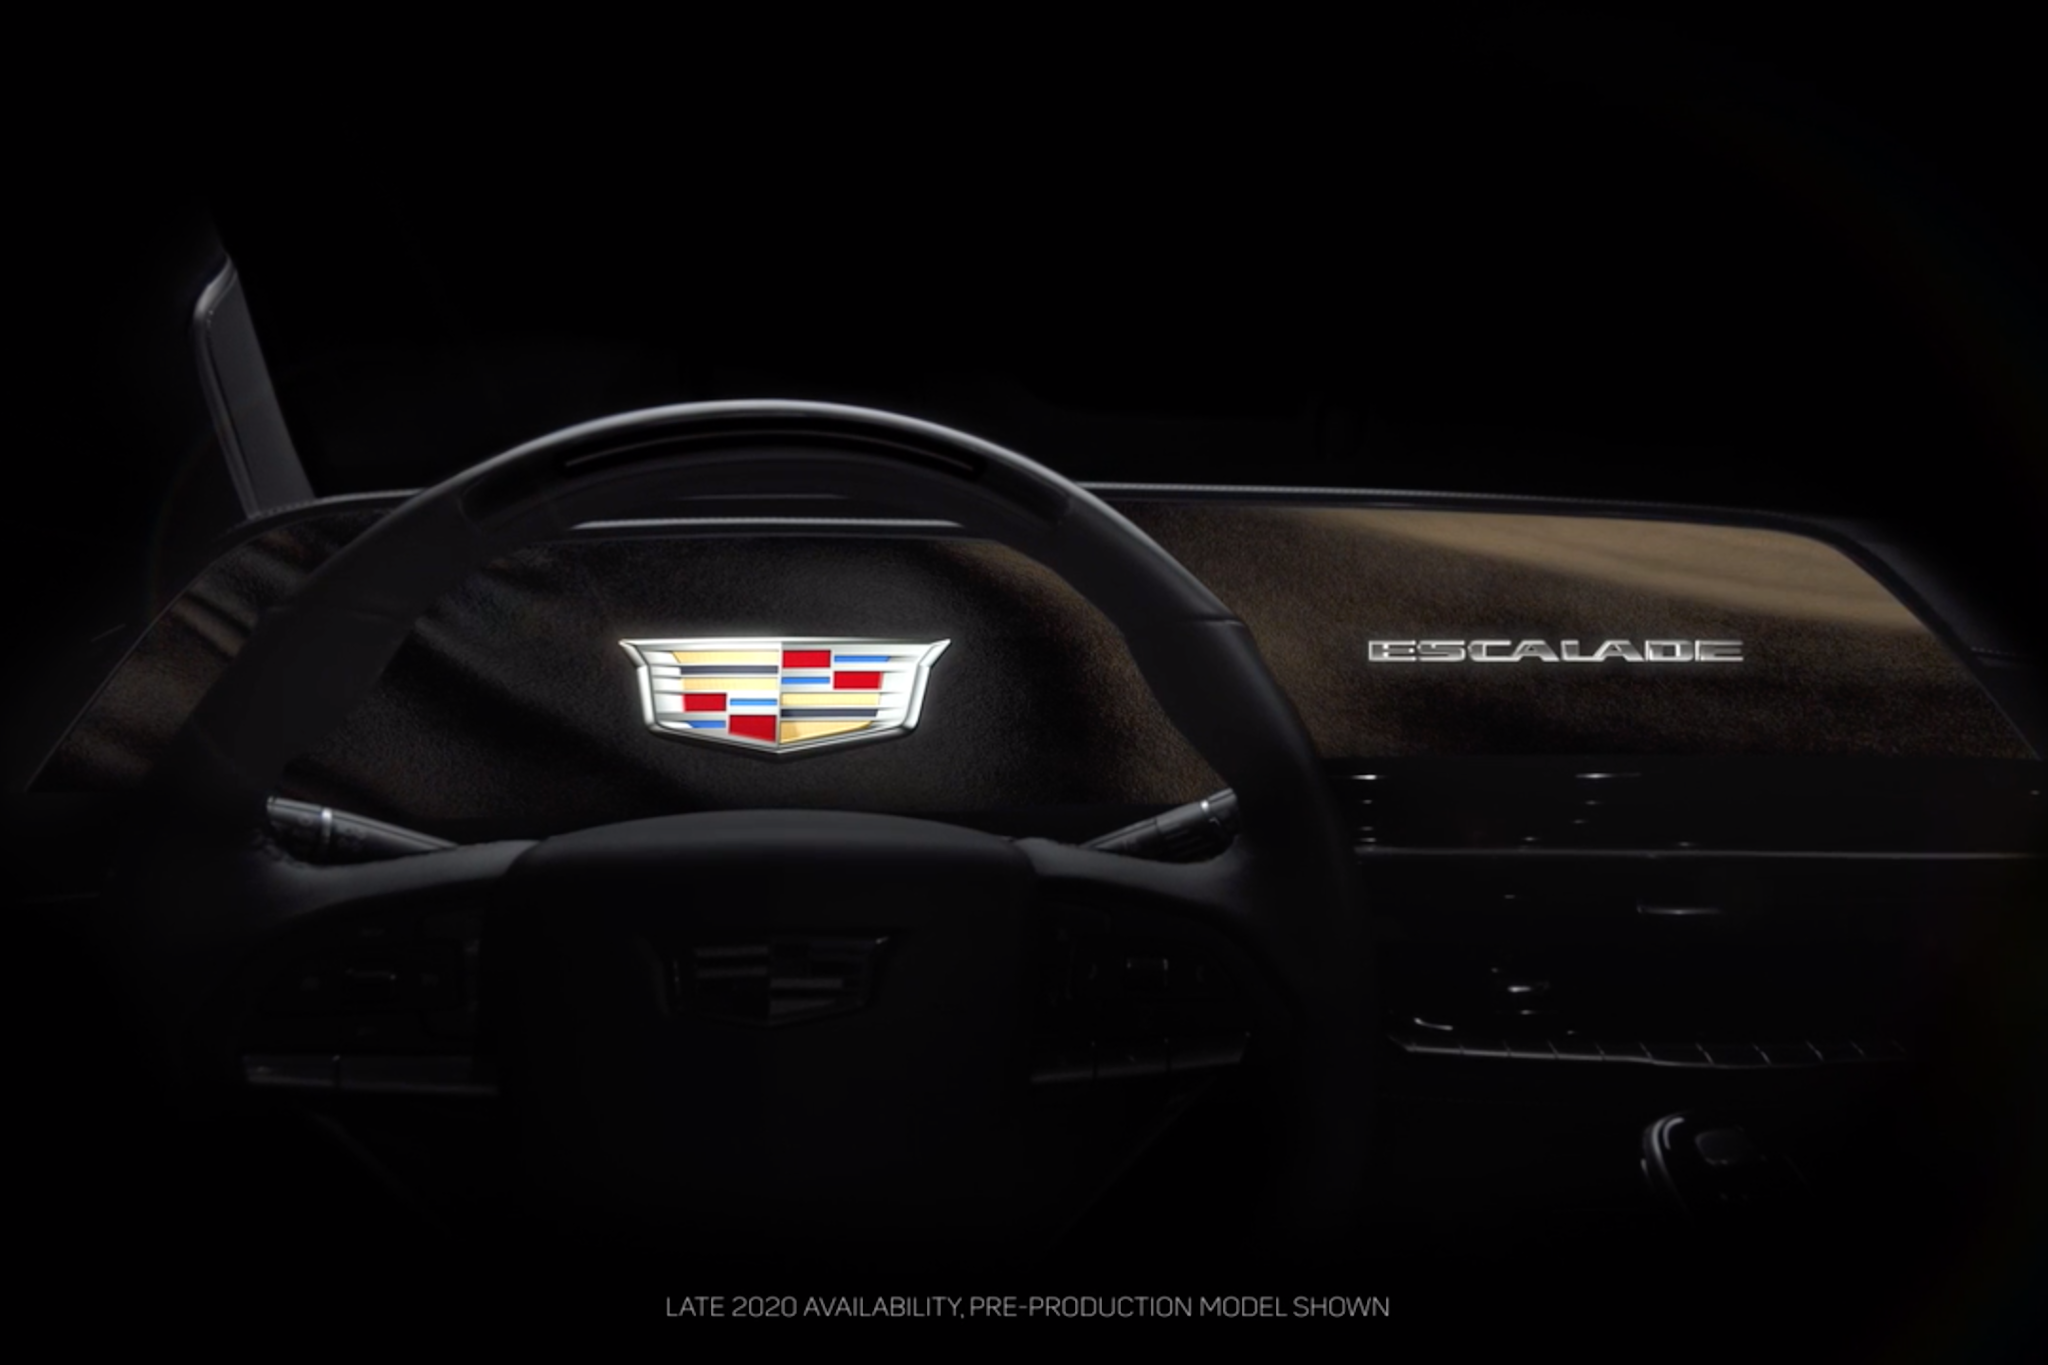 2021 Cadillac Escalade Takes the Curves With Massive New Multimedia Screen